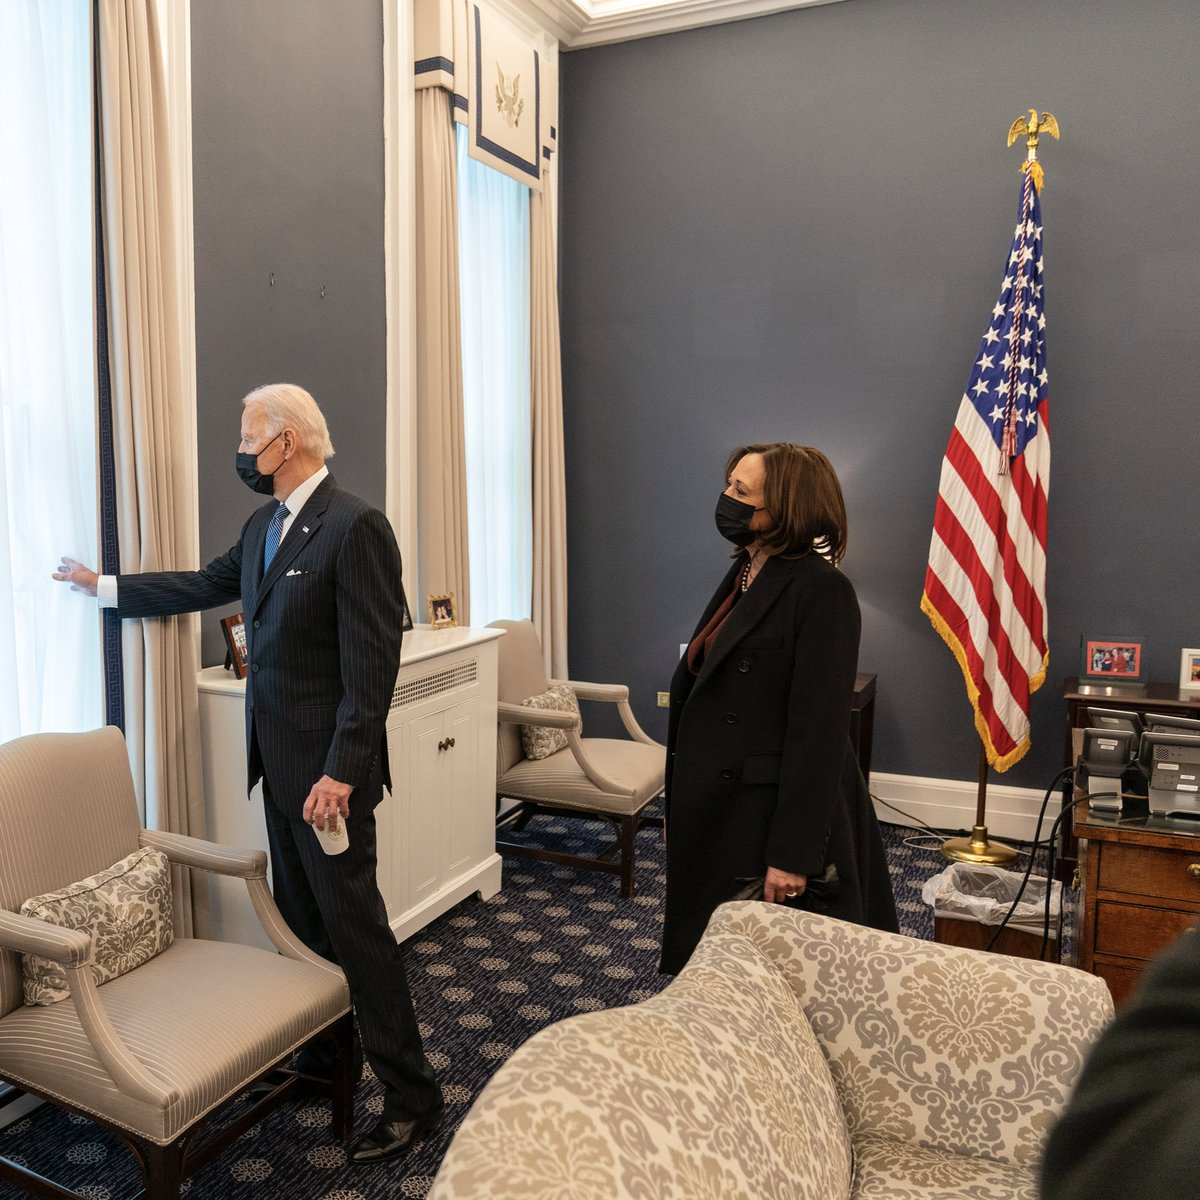 """During a @POTUS visit to my office (his old office), he showed me where - on Valentine's Day in 2009 - @FLOTUS wrote """"Joe loves Jill"""" on all the window panes. I love that story! To @POTUS, @FLOTUS, and all Americans: #HappyValentines"""